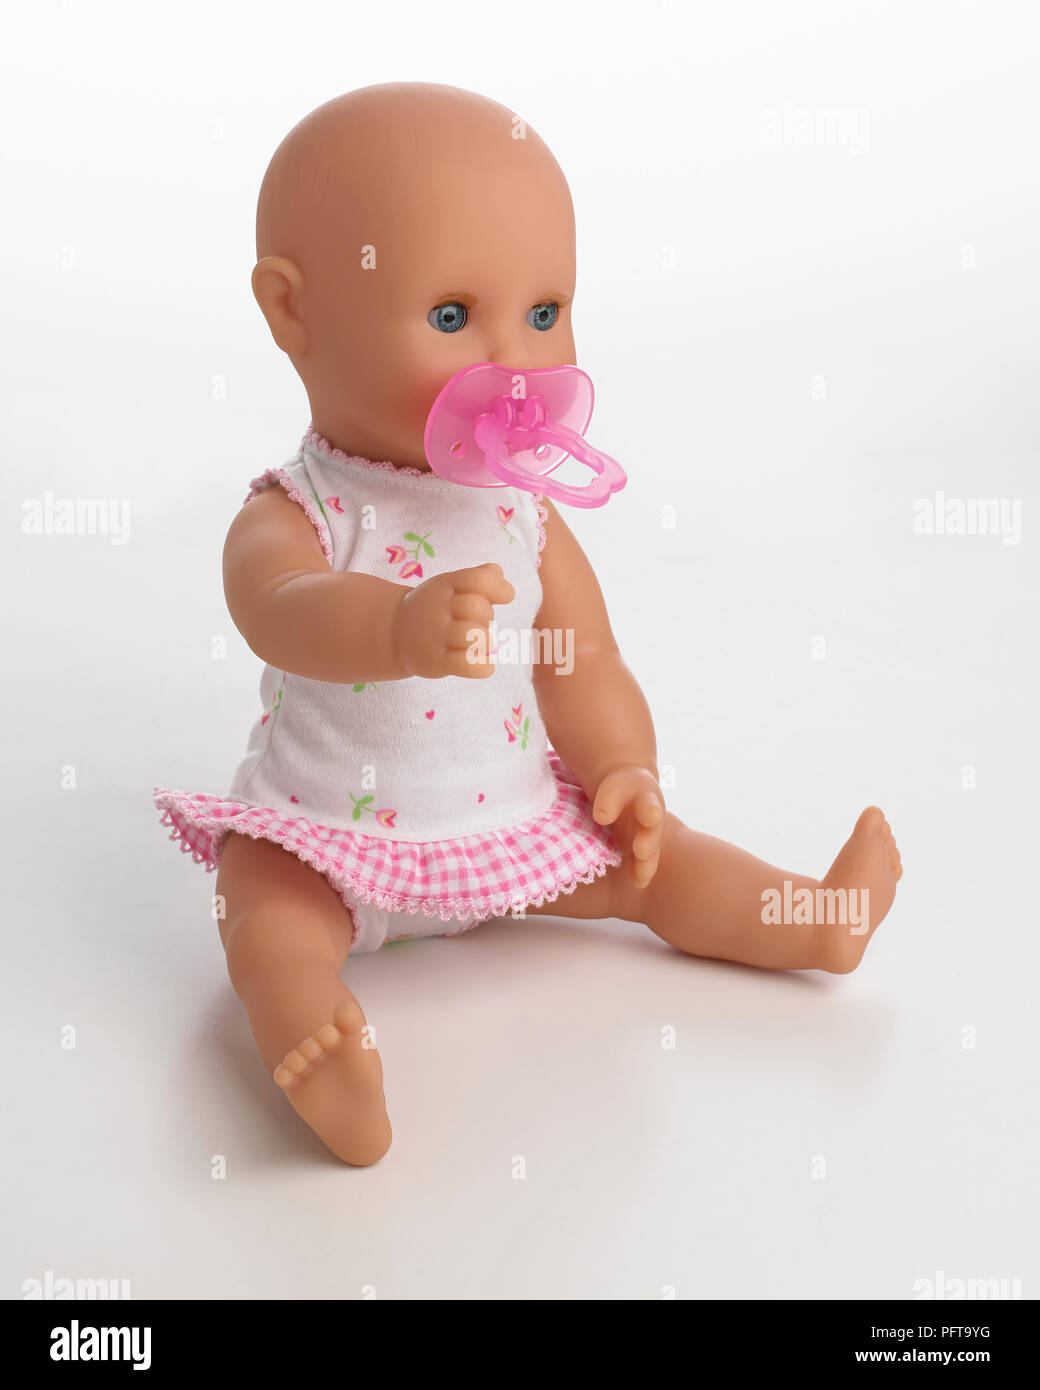 Doll baby with dummy in mouth - Stock Image